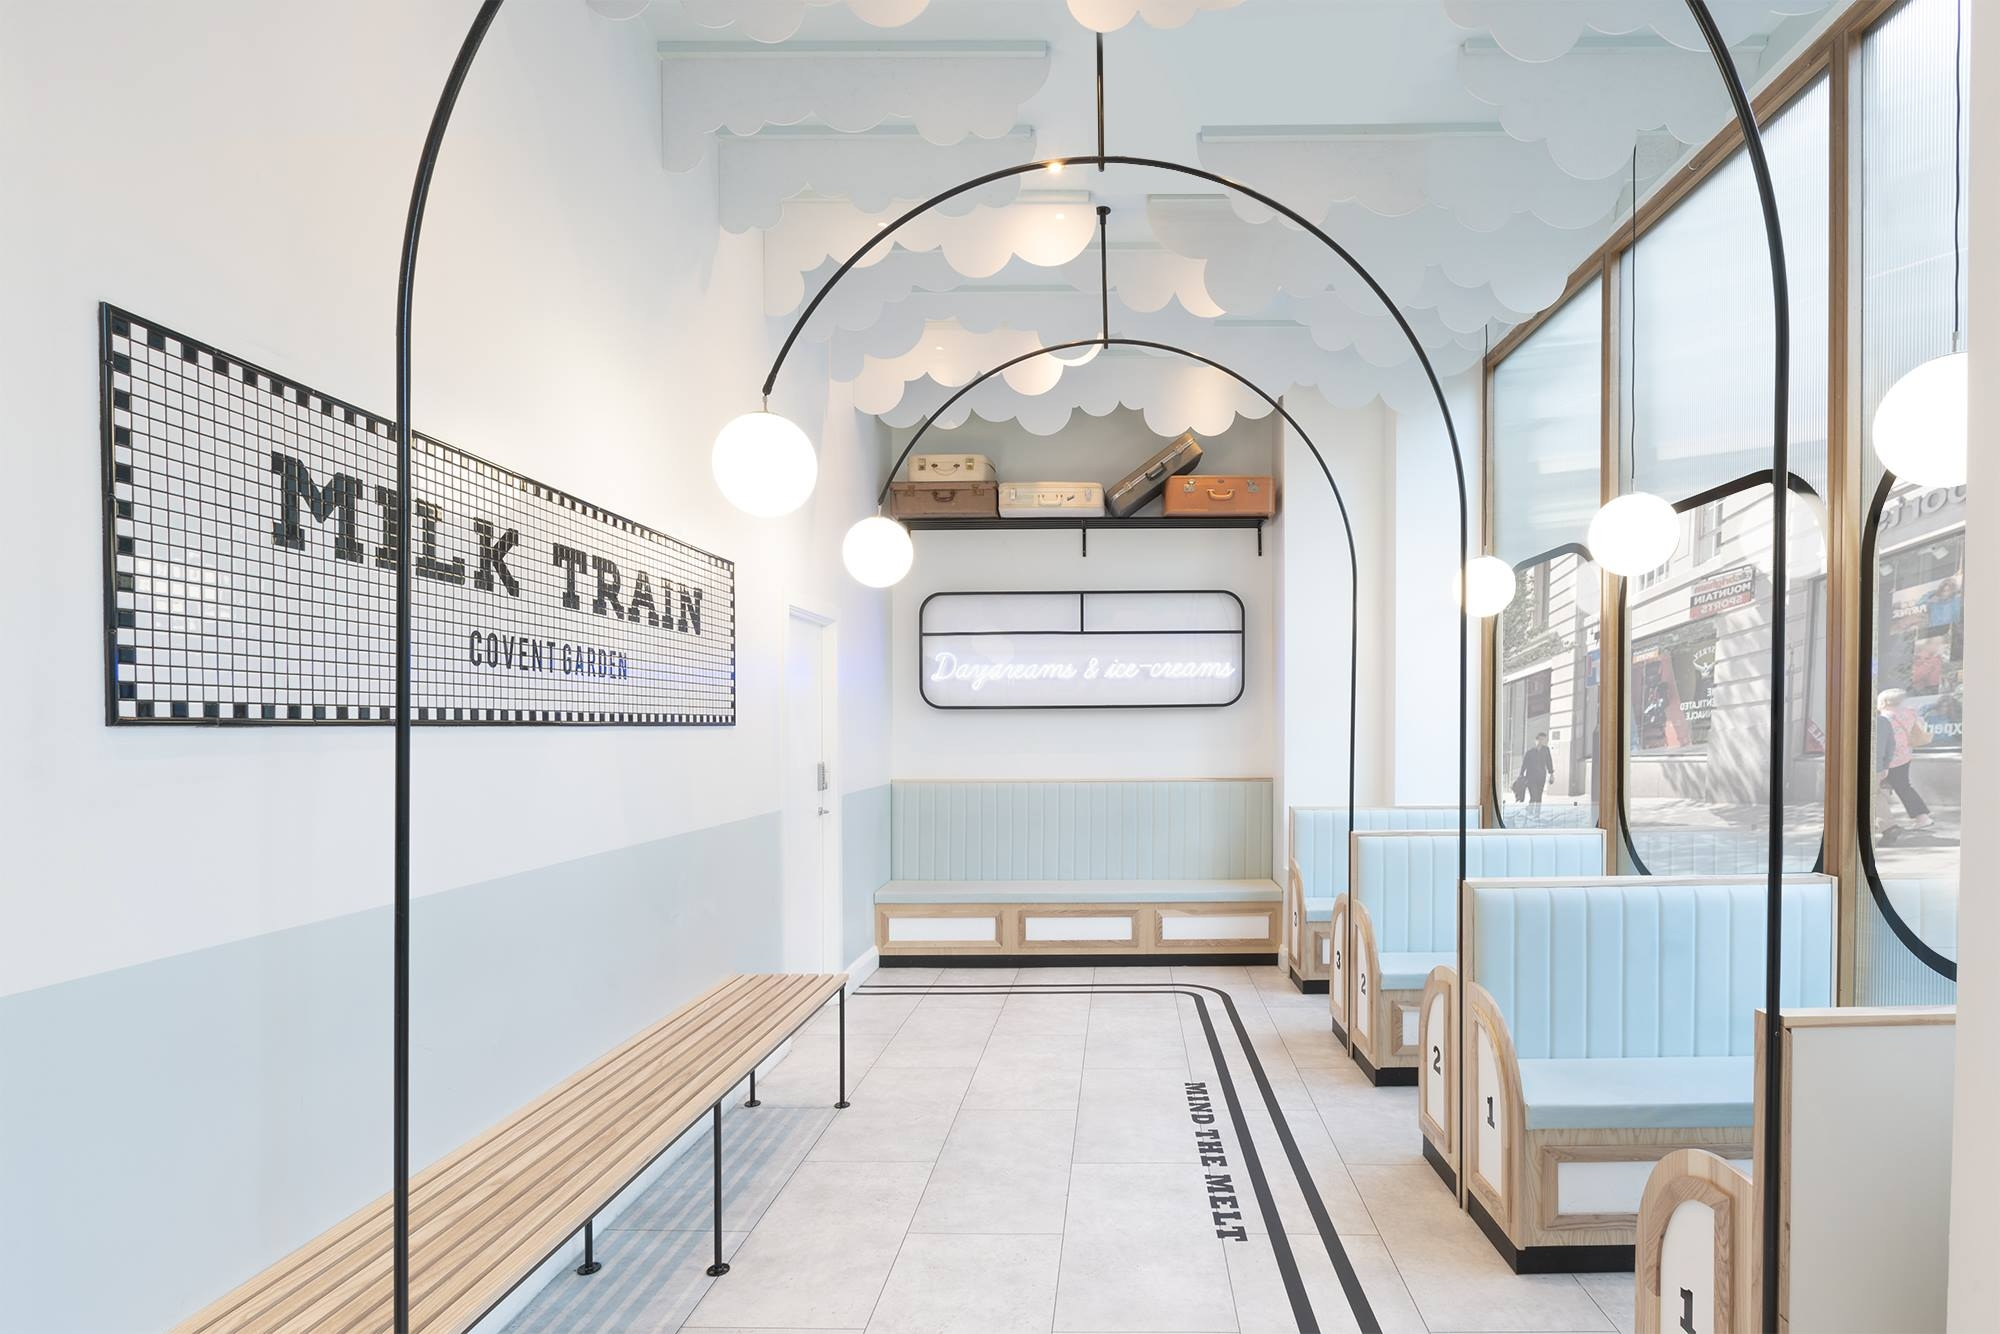 Milk Train Art Deco interior by FormRoom